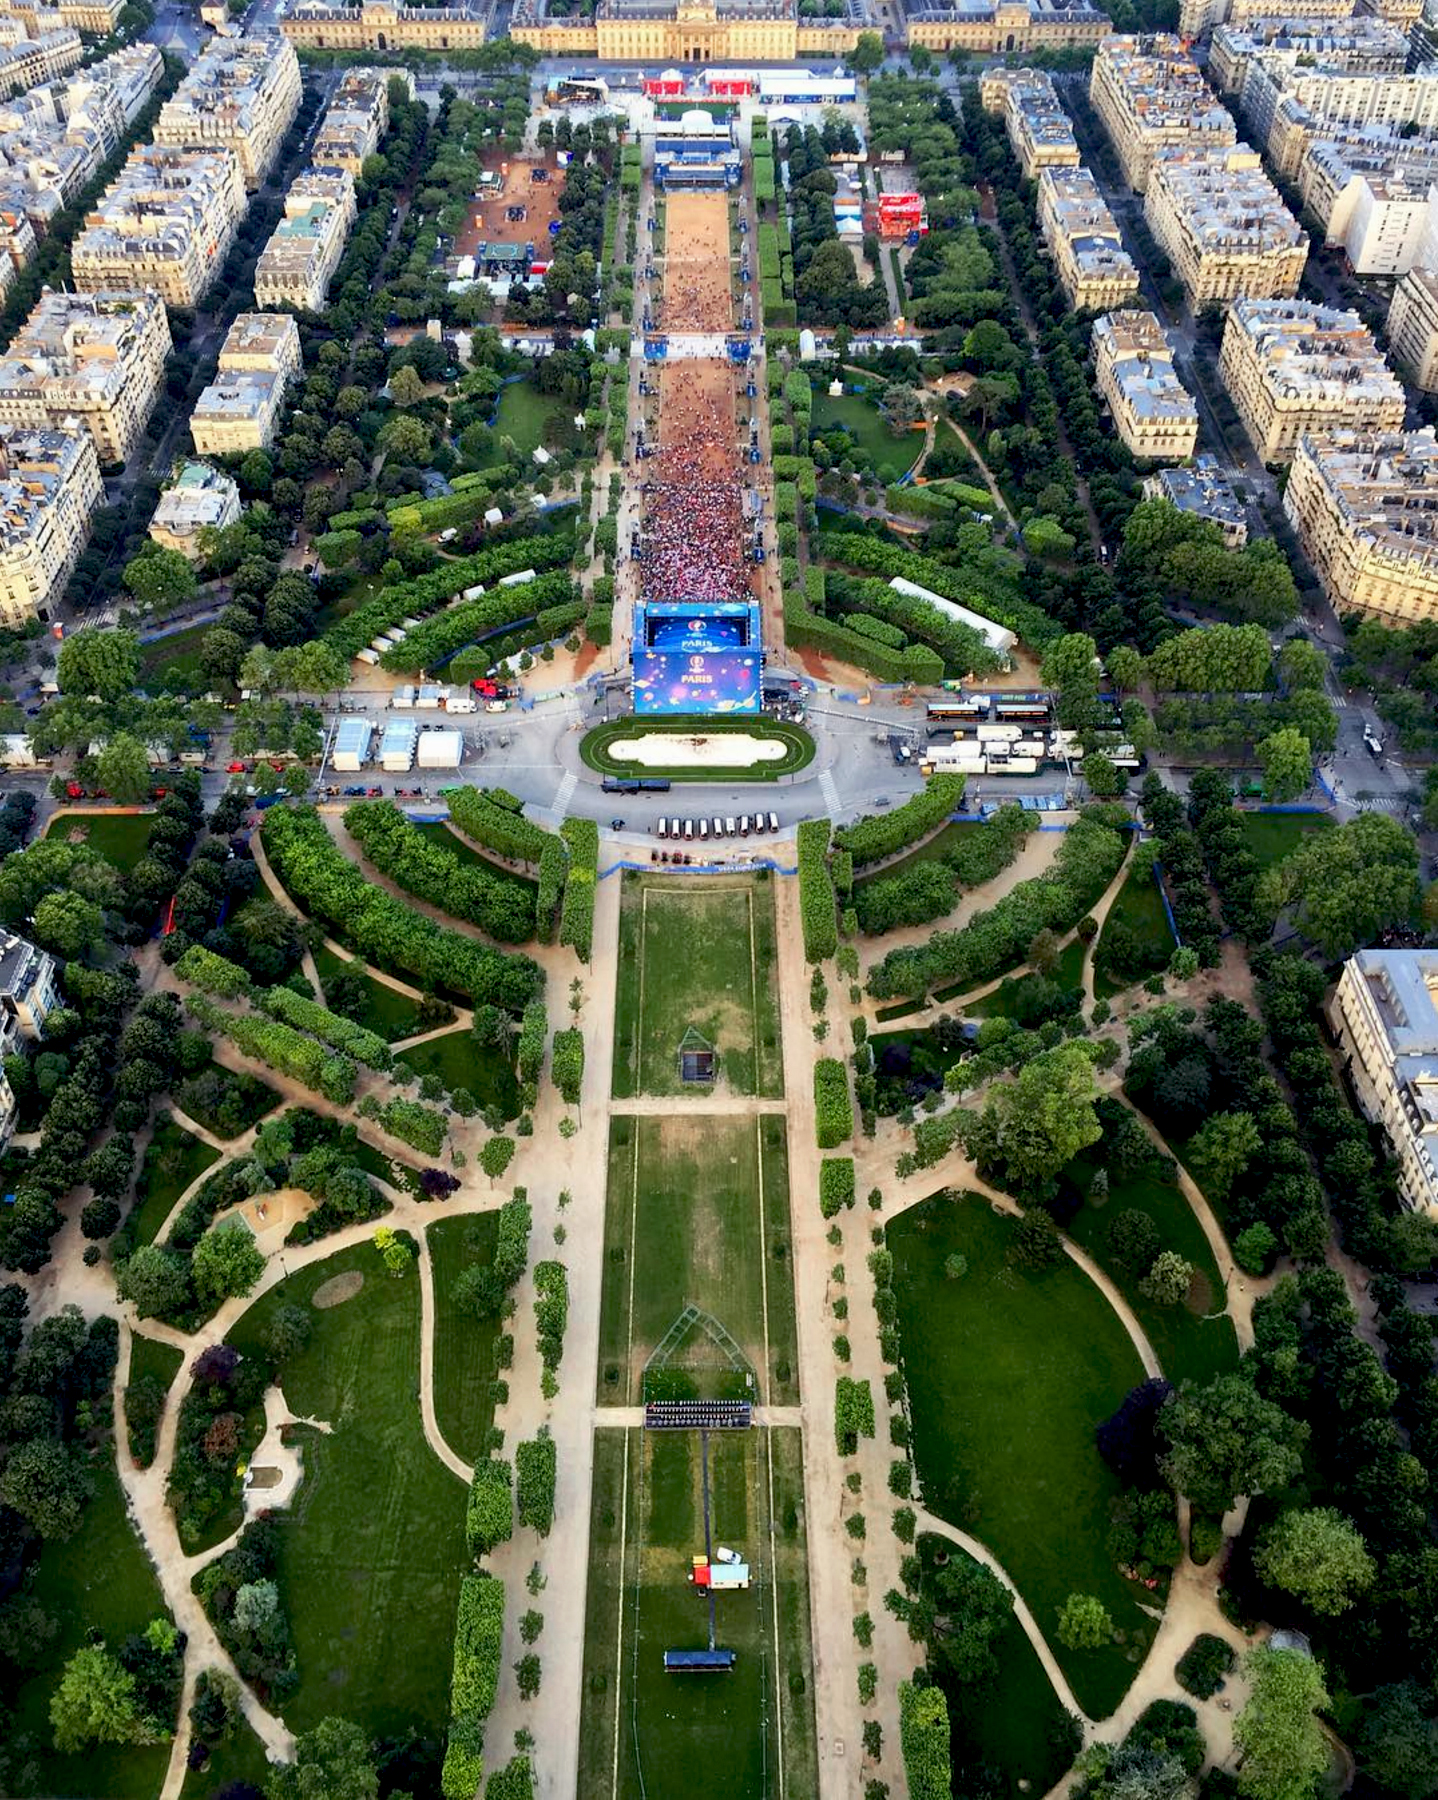 Check out this incredible overview from the top of the Eiffel Tower in Paris, France. This shot captures the Euro 2016 Fan Zone at Champ de Mars and was taken by our friend Kayla Bernardino. The quarterfinals of the tournament are currently underway with a match today between Wales and Belgium. If you are ever in Paris, the Eiffel Tower offers the highest vantage point in the city, rising 1,063 feet (324 meters).